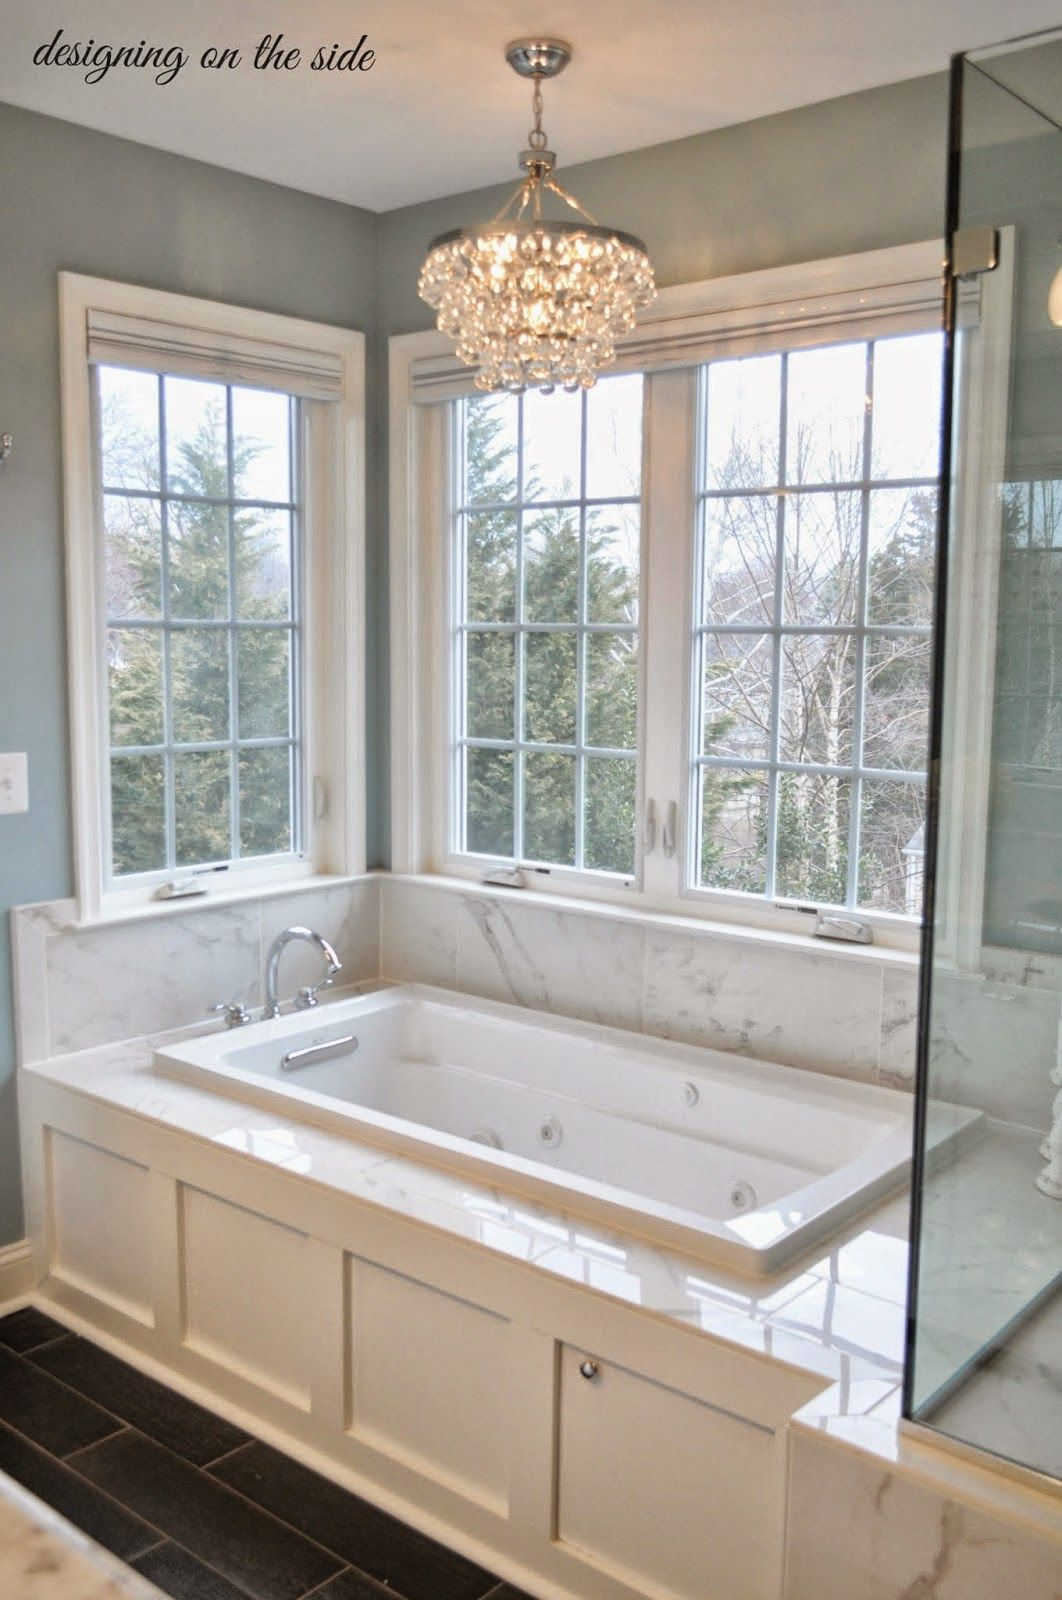 Simple ideas for creating a gorgeous master bathroom. Click to see! #dreambathrooms